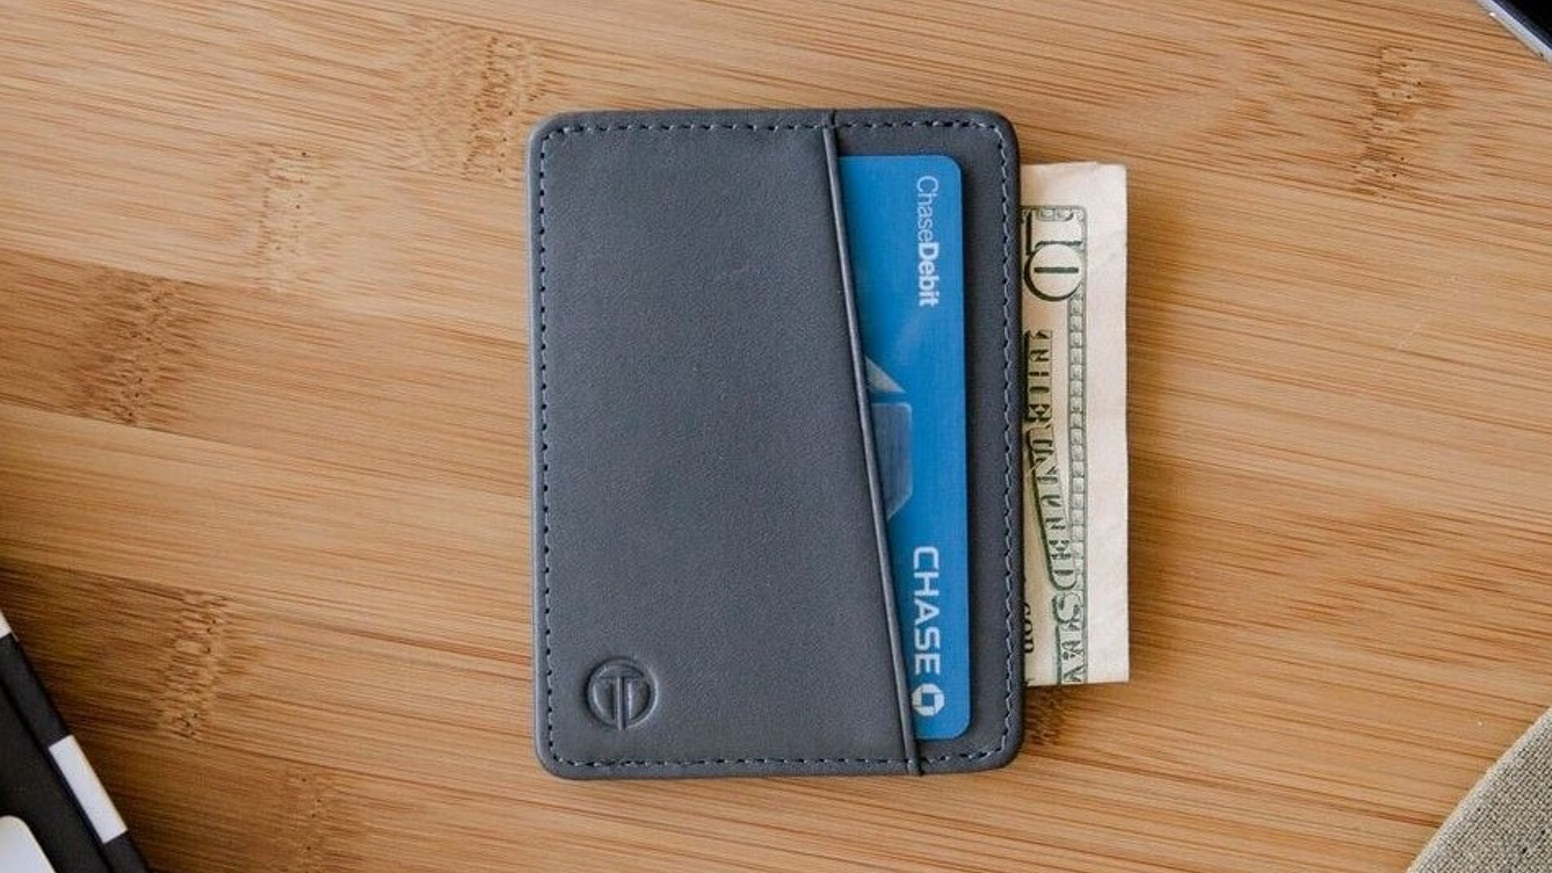 Slim minimalist wallet with push through cash slot for easy access and functionally designed card slots for everyday use.